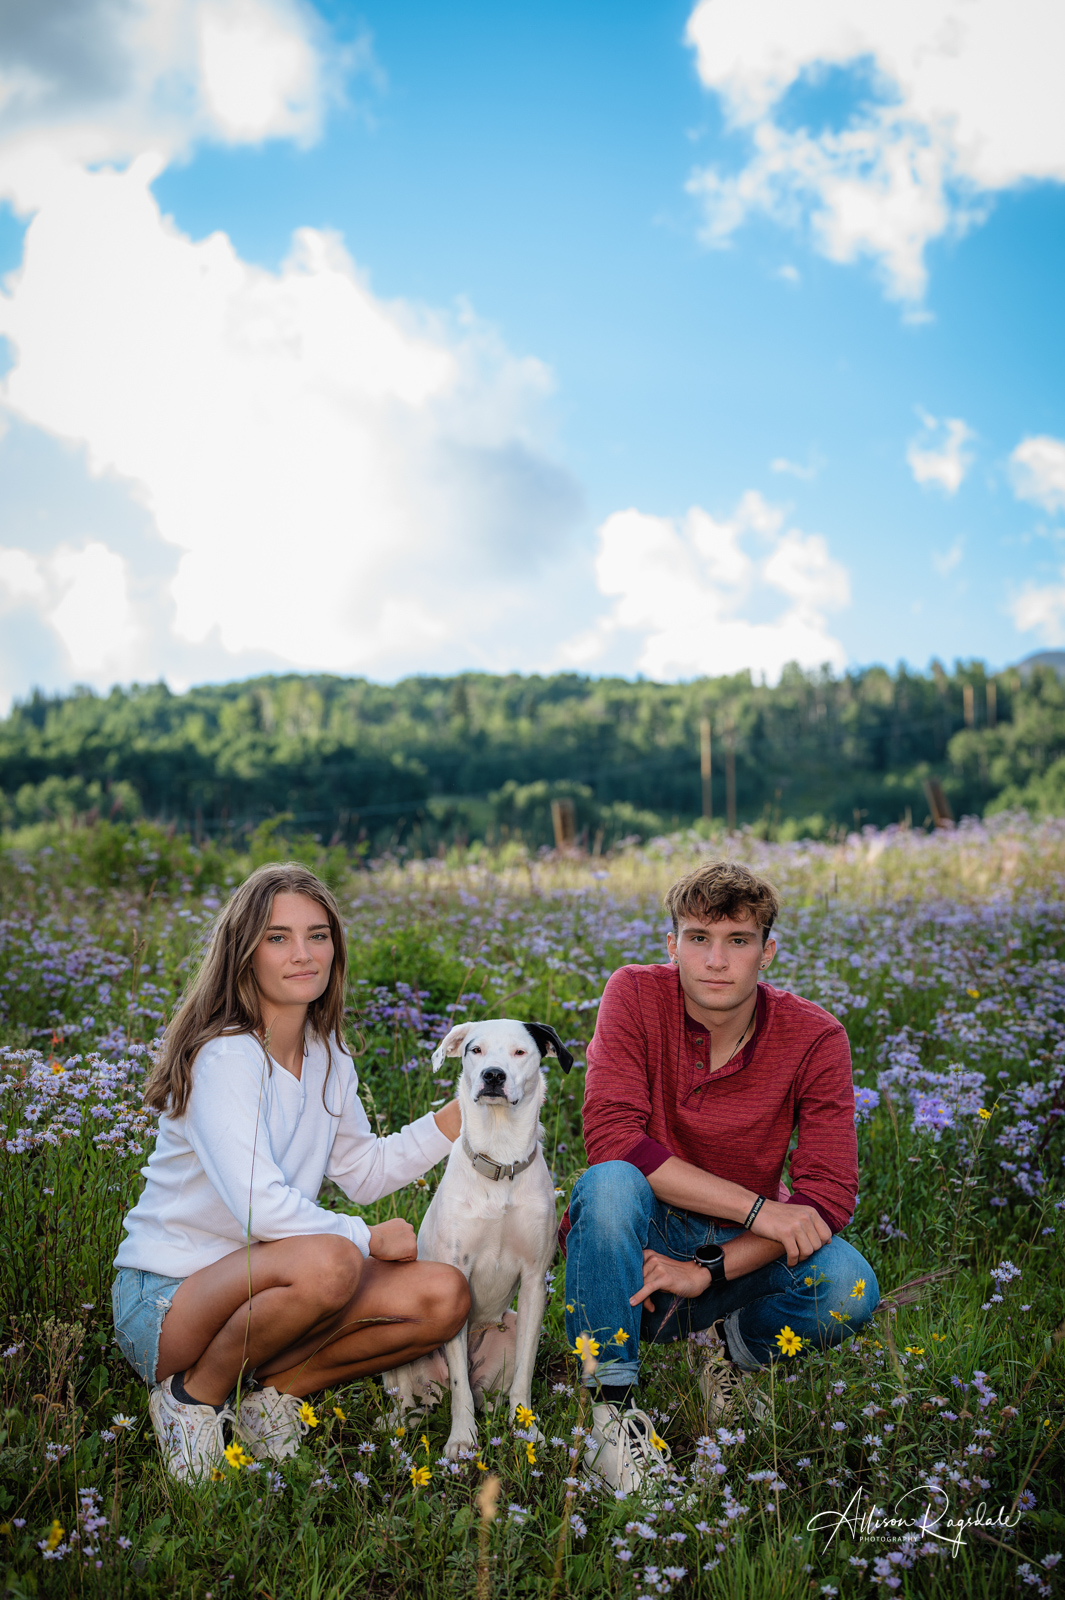 sibling picture with dog serious faces in wildflowers